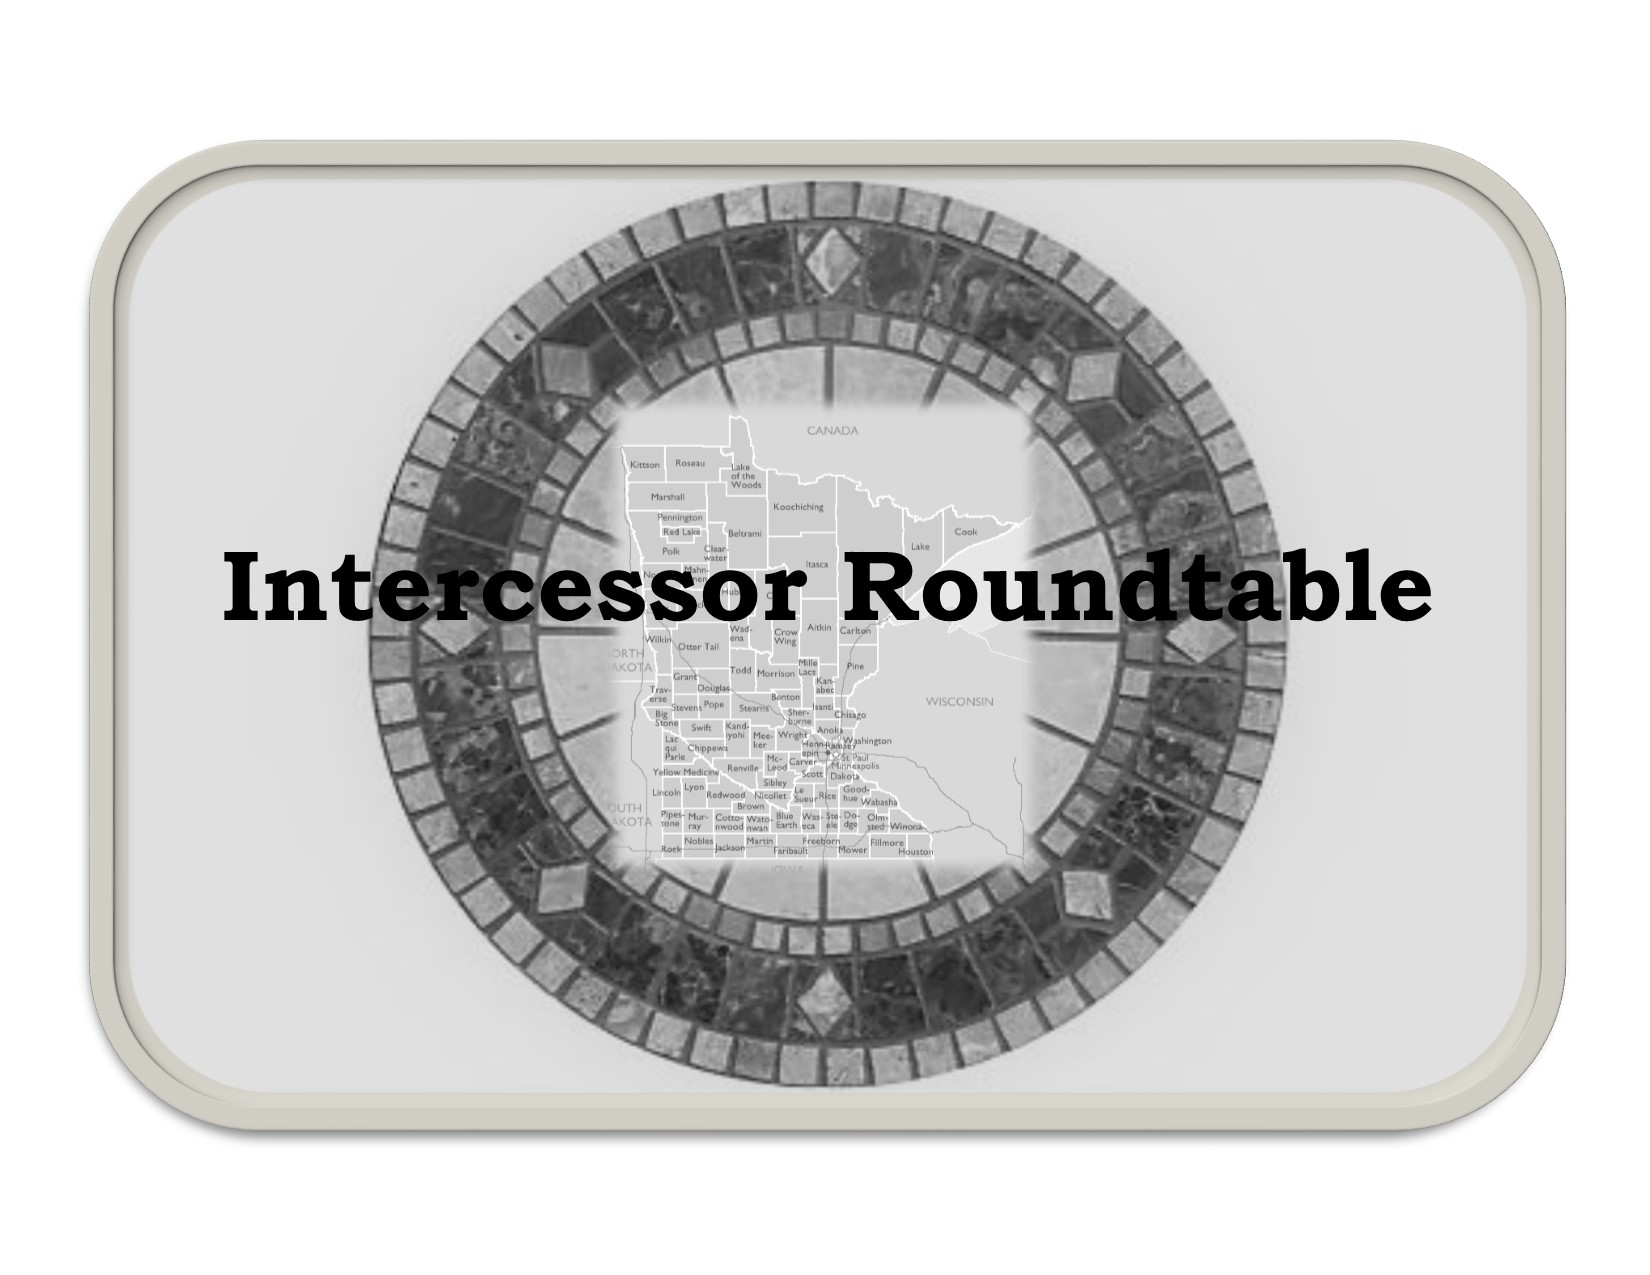 County Intercessor Roundtables